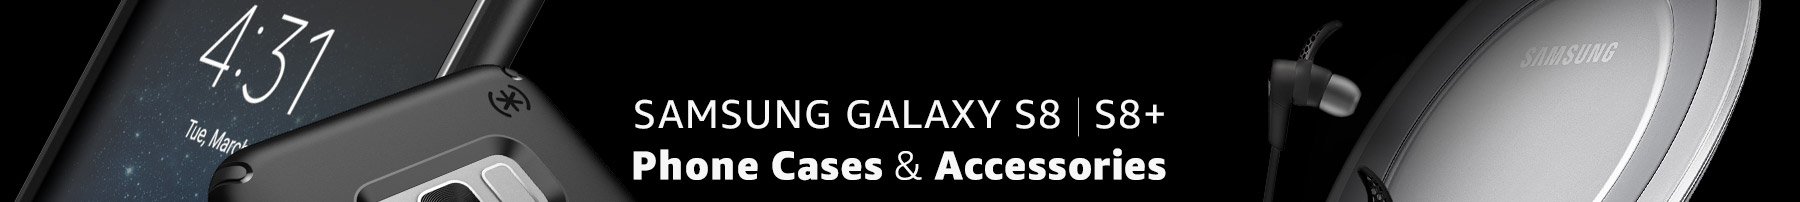 Samsung Galaxy S8/S8+ Cases and Accessories